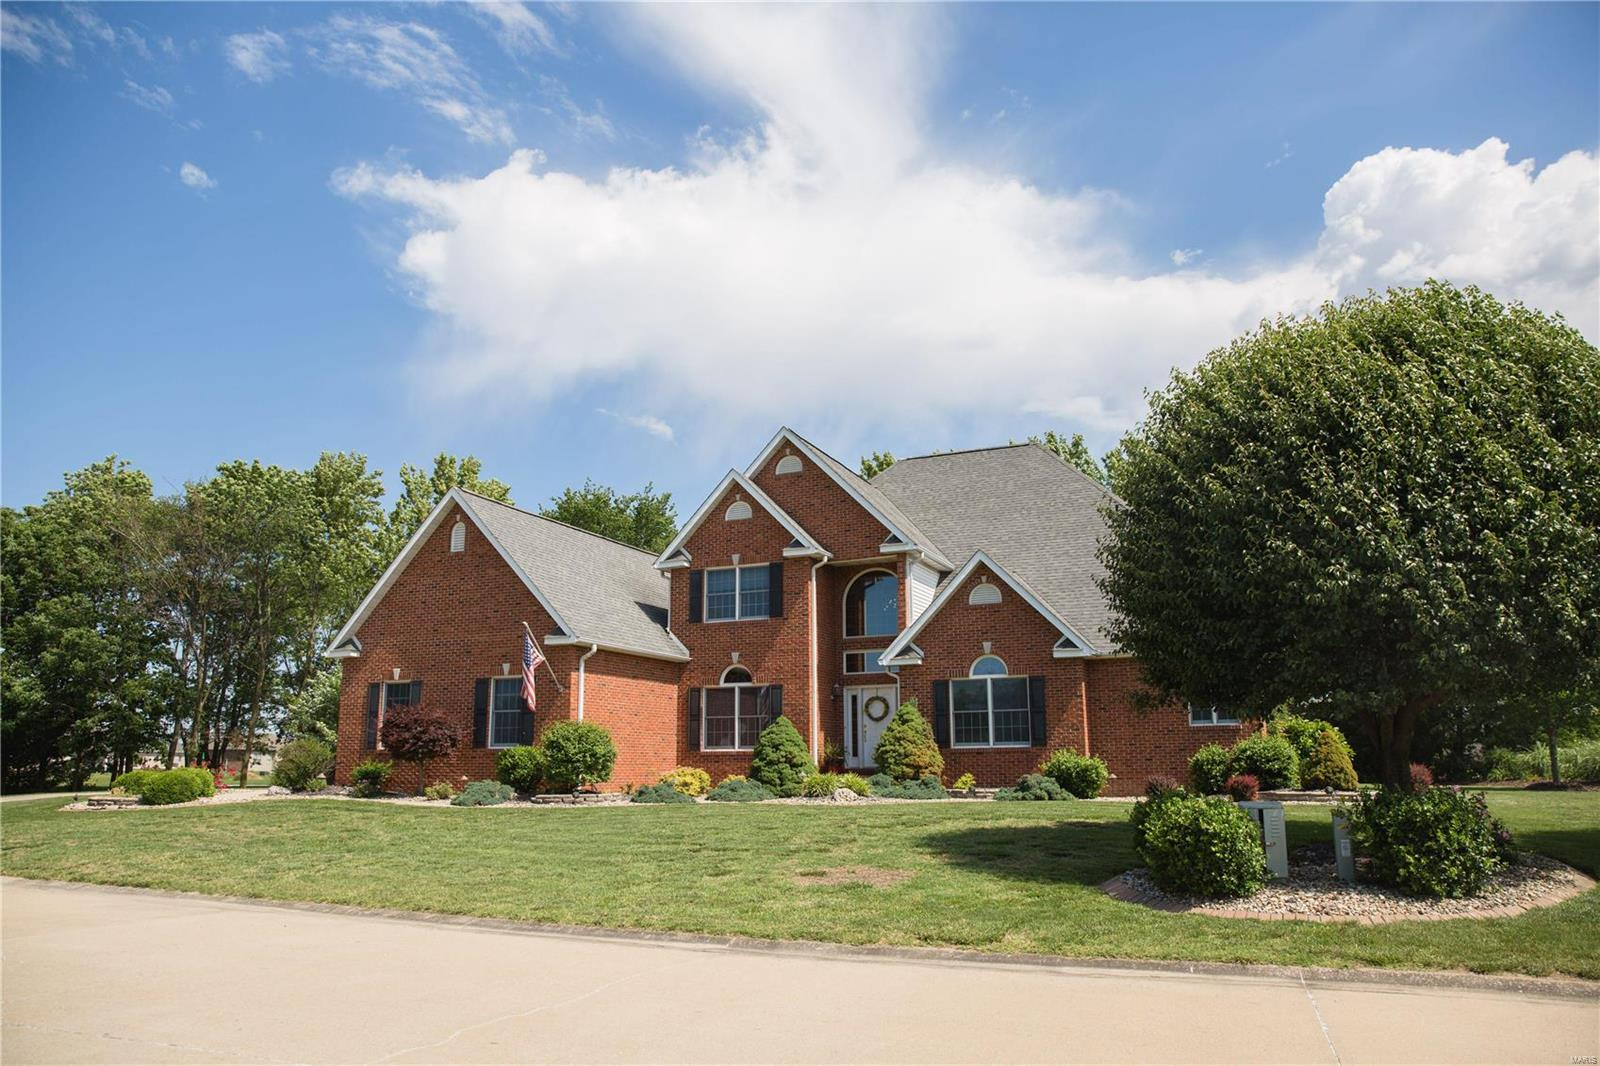 1215 Willow Creek Property Photo - Breese, IL real estate listing